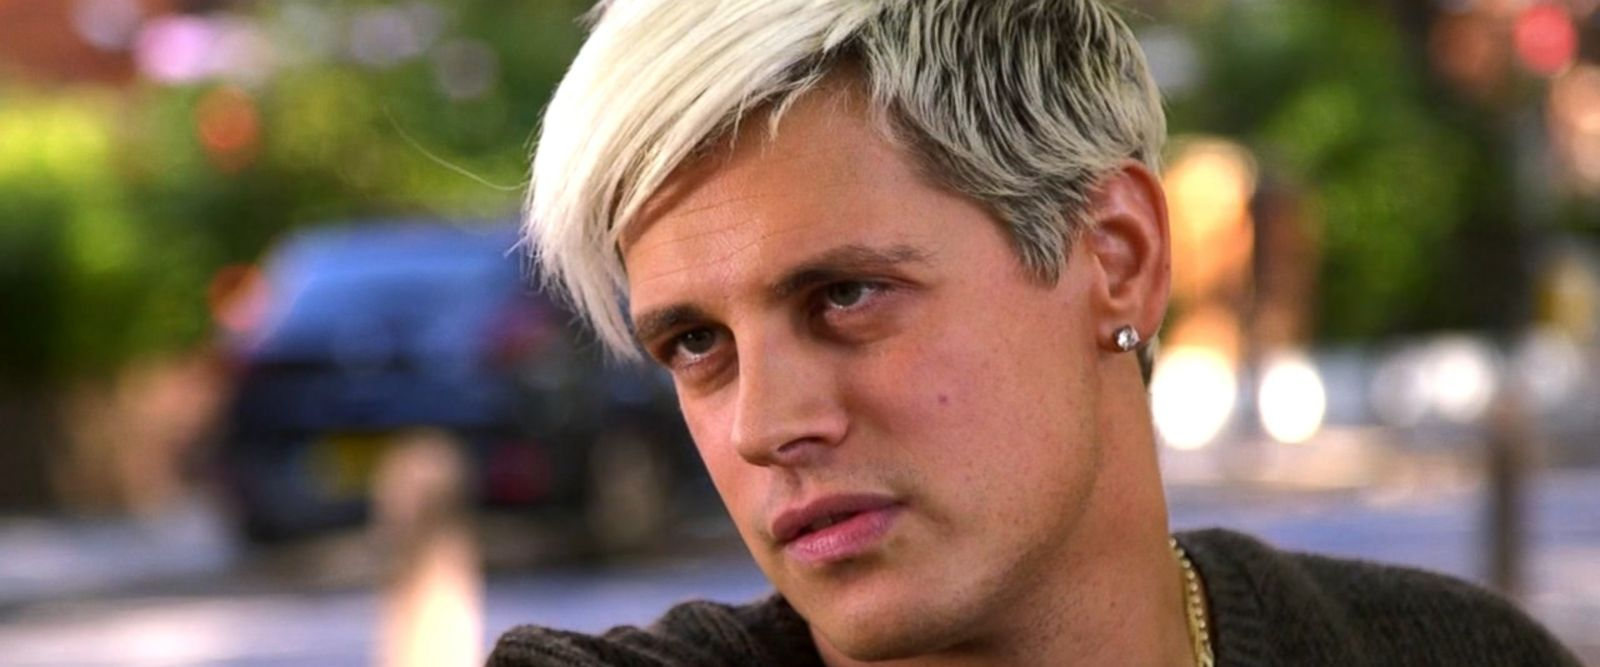 VIDEO: Controversial Breitbart News editor Milo Yiannopoulos will not be the keynote speaker at this year's Conservative Political Action Conference (CPAC), the group that organizes the event said.